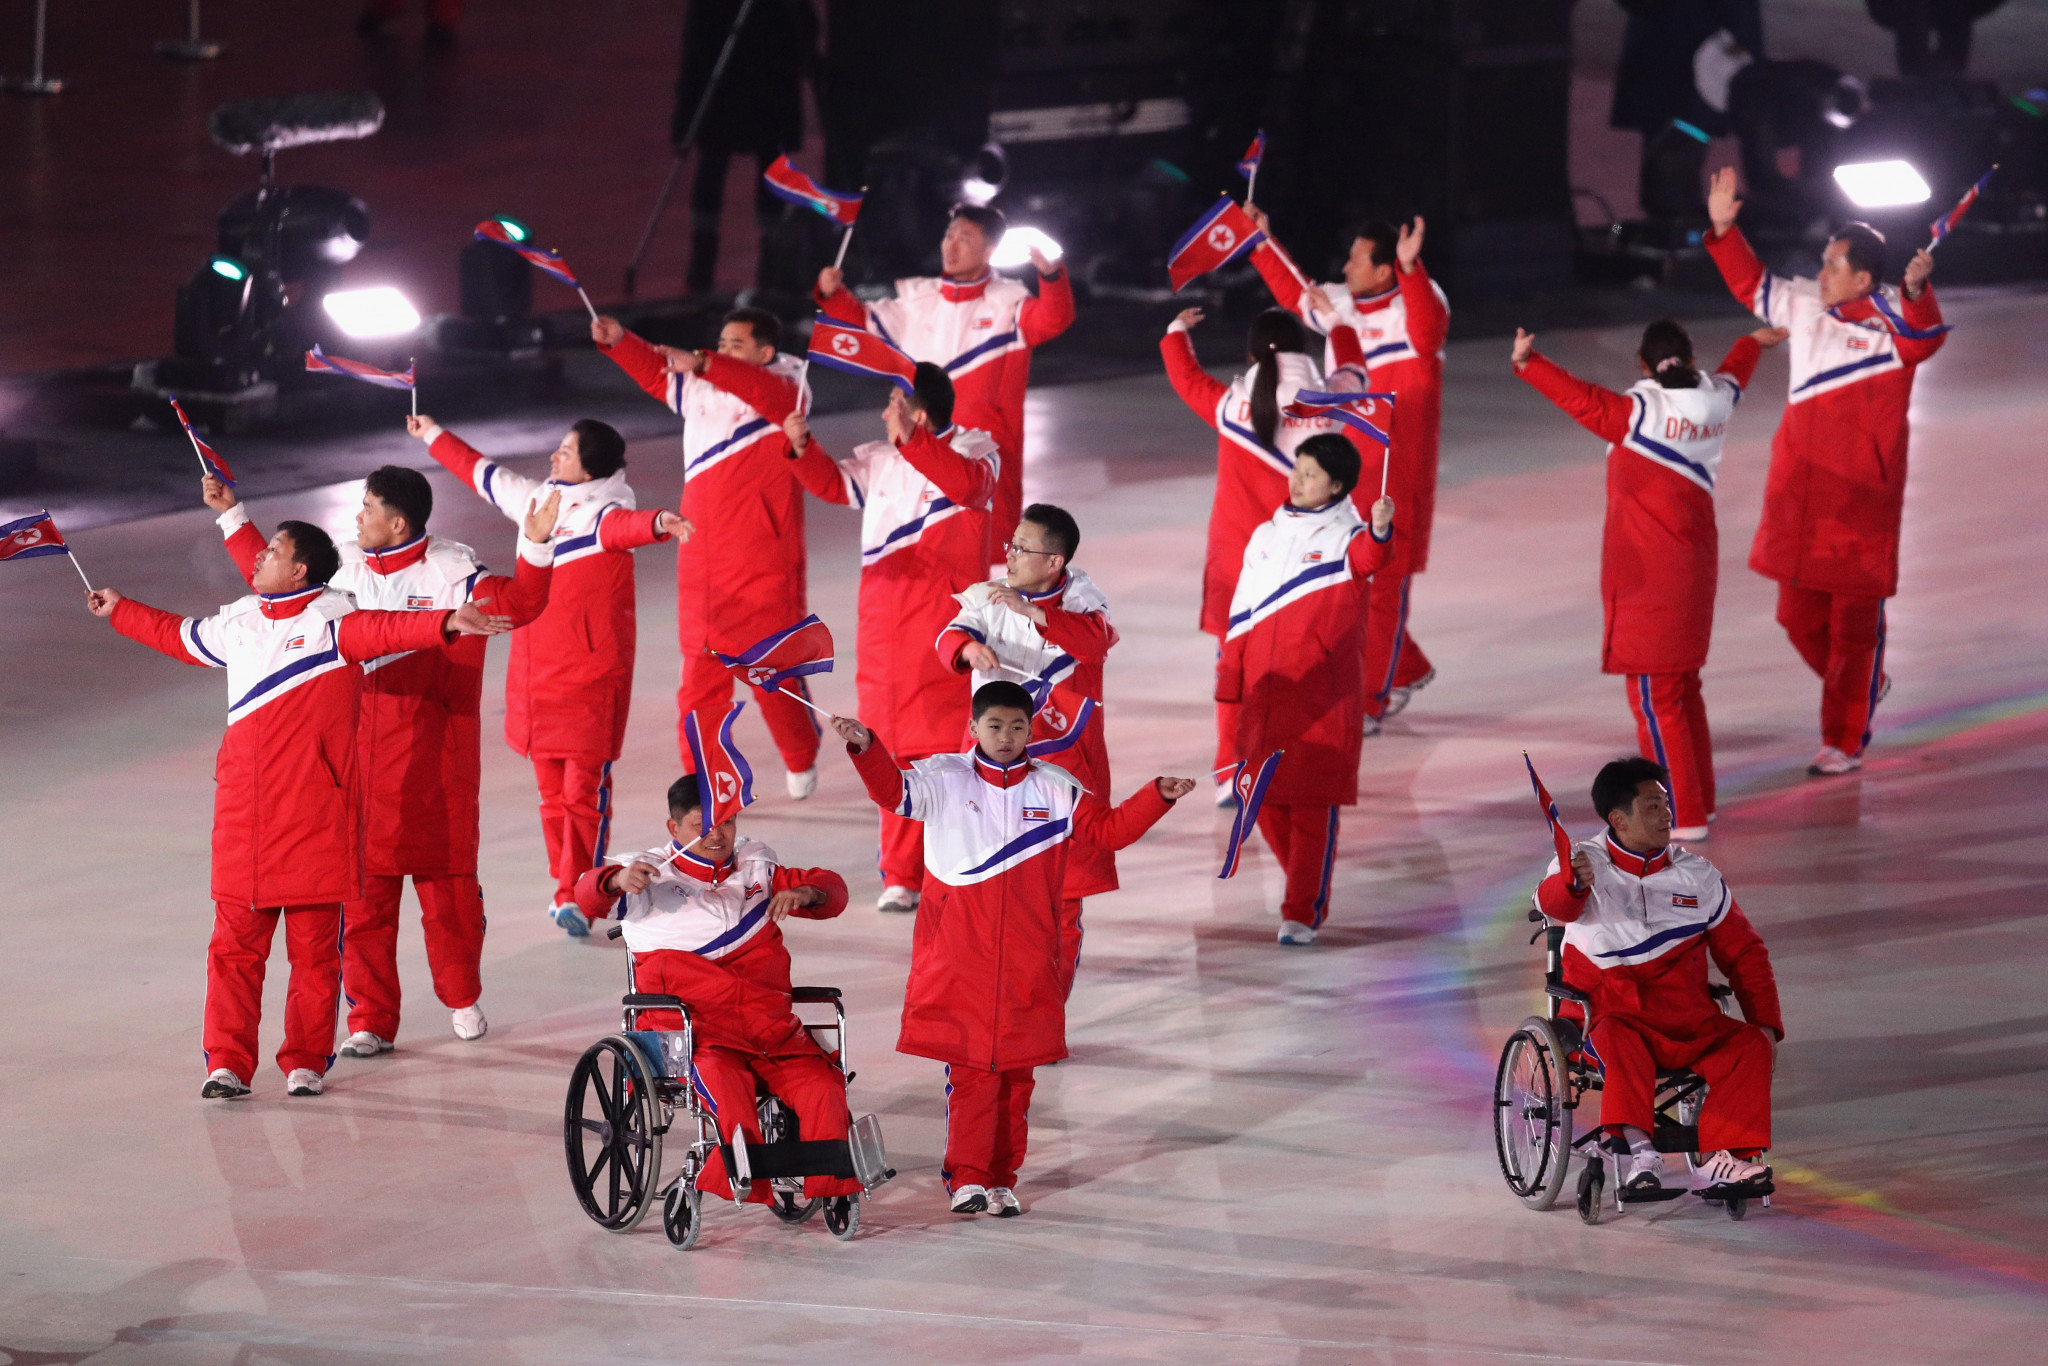 North Korea marched separately from hosts South Korea at the Opening Ceremony of the 2018 Winter Paralympics in Pyeongchang following a dispute over the unification flag ©Getty Images